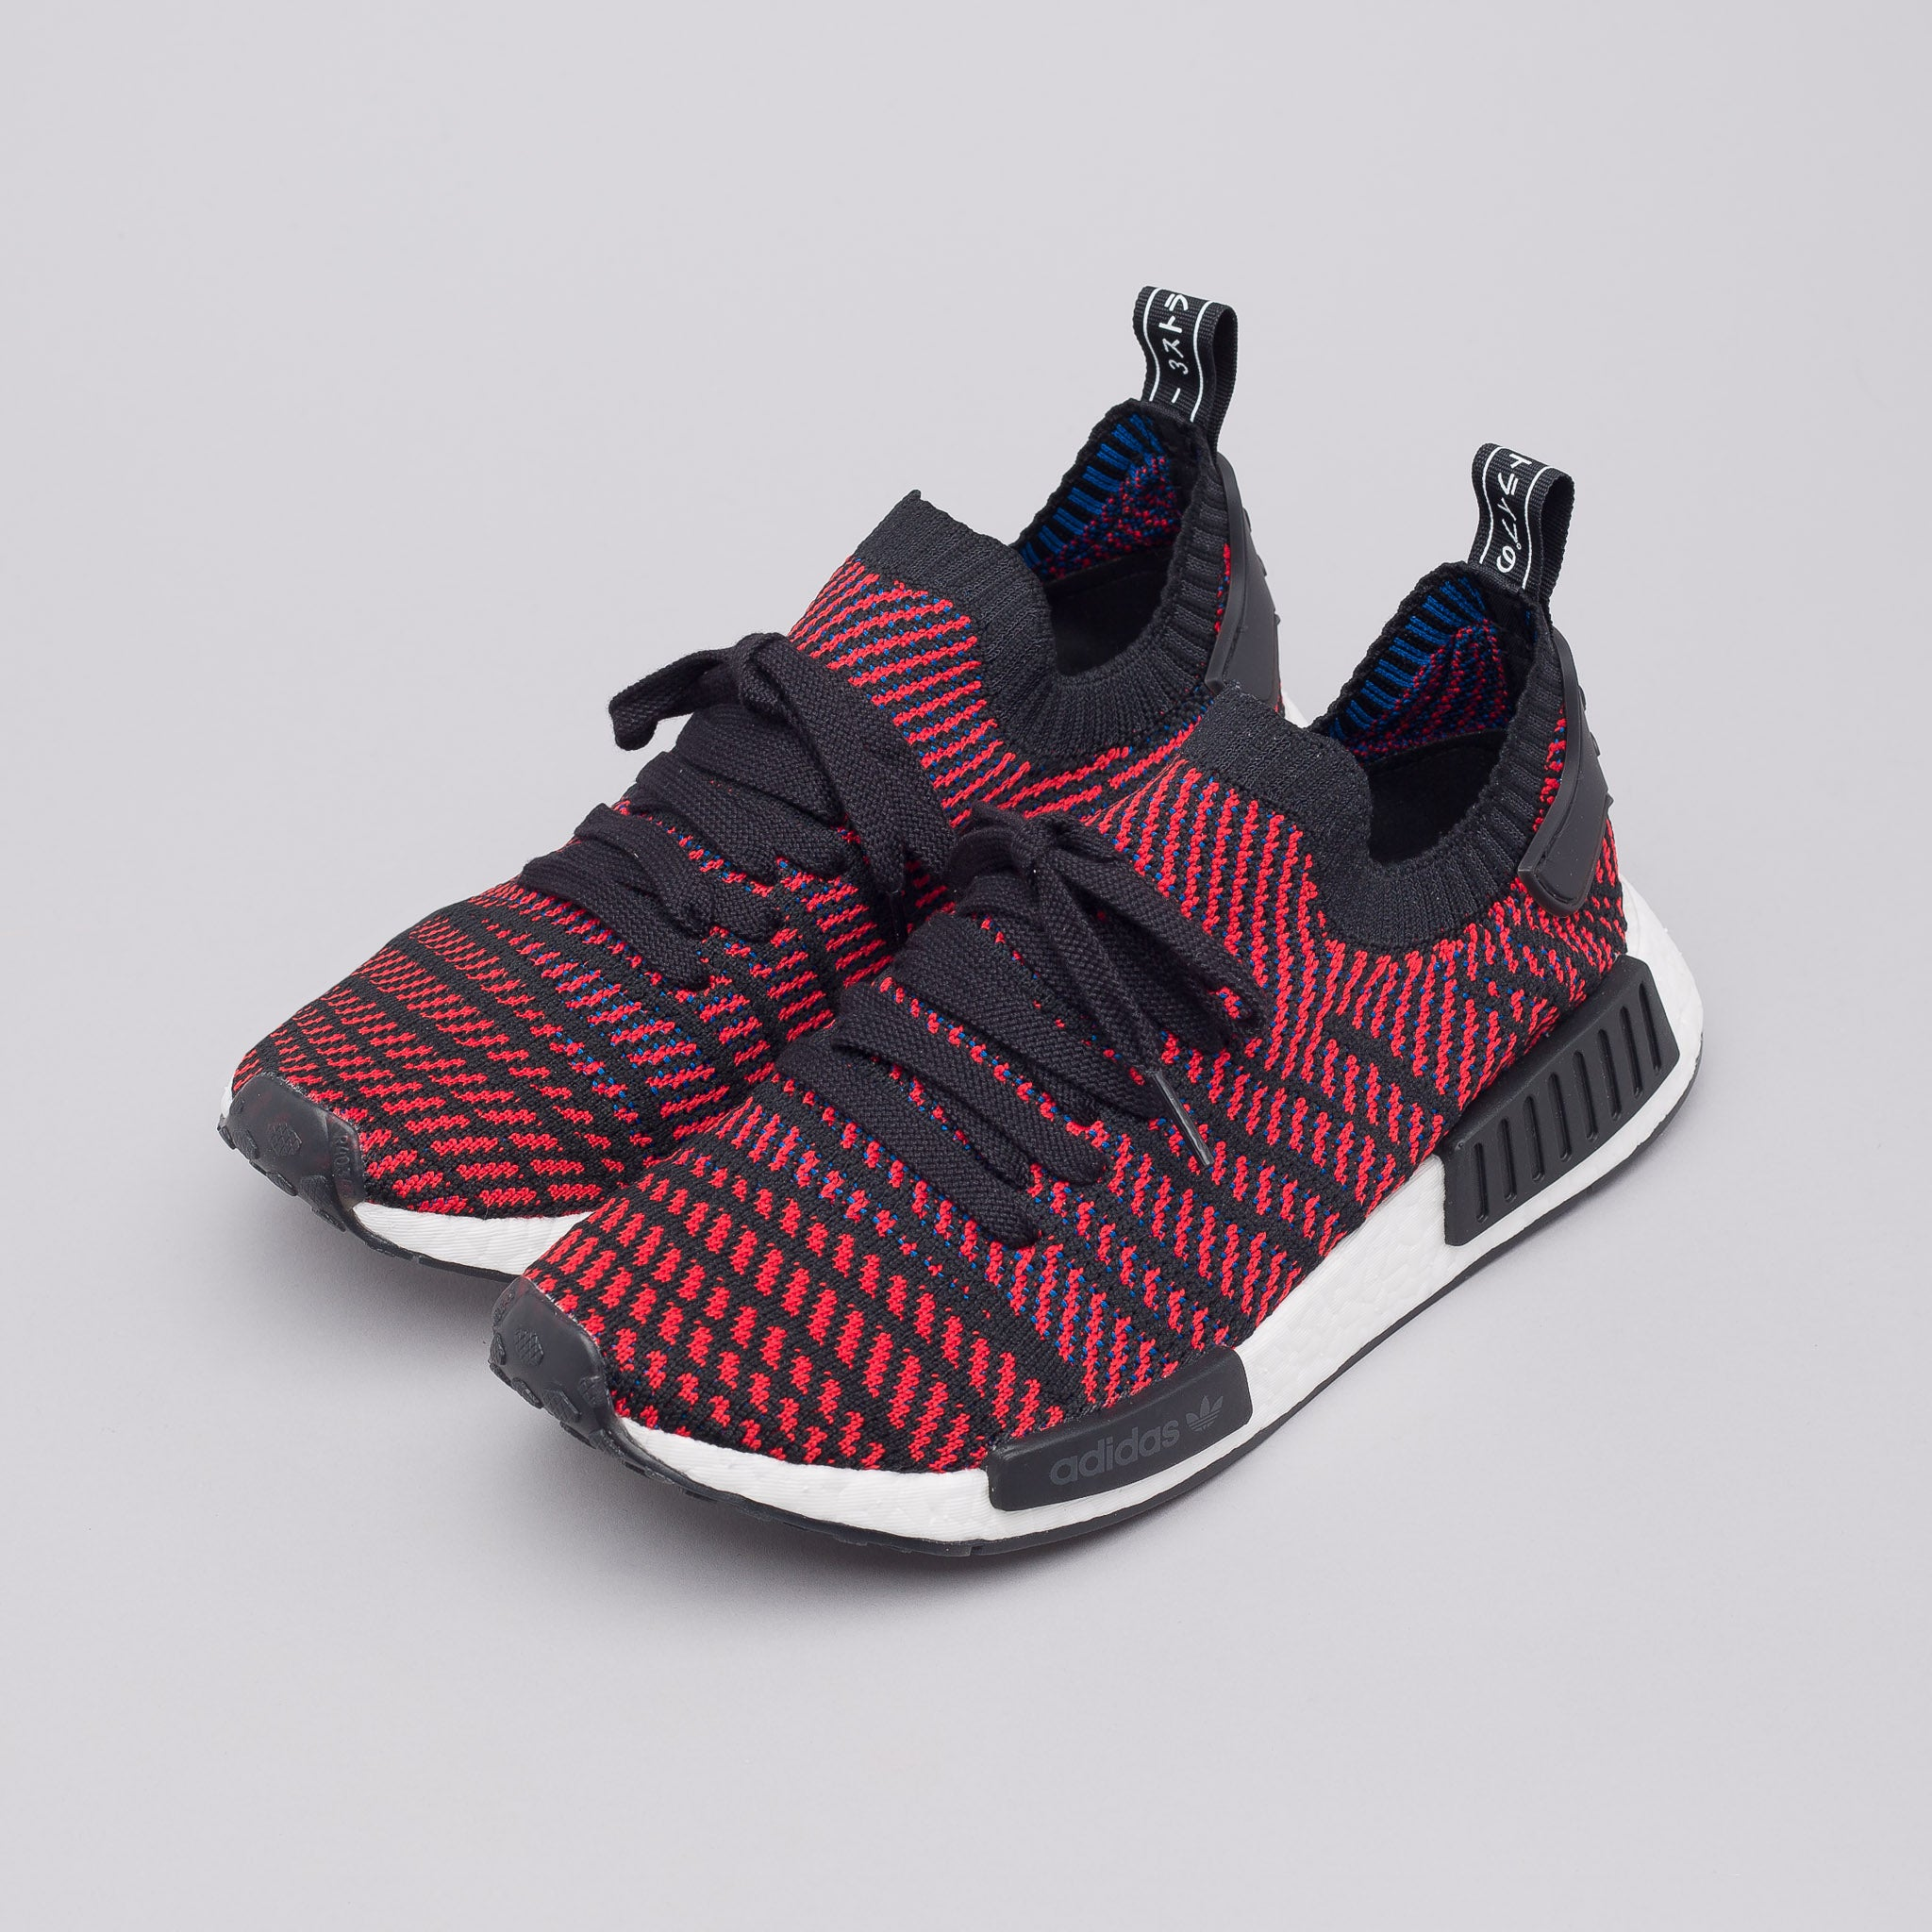 New Sneaker Alert: adidas NMD R1 'Salmon Pink' REBEL FROM